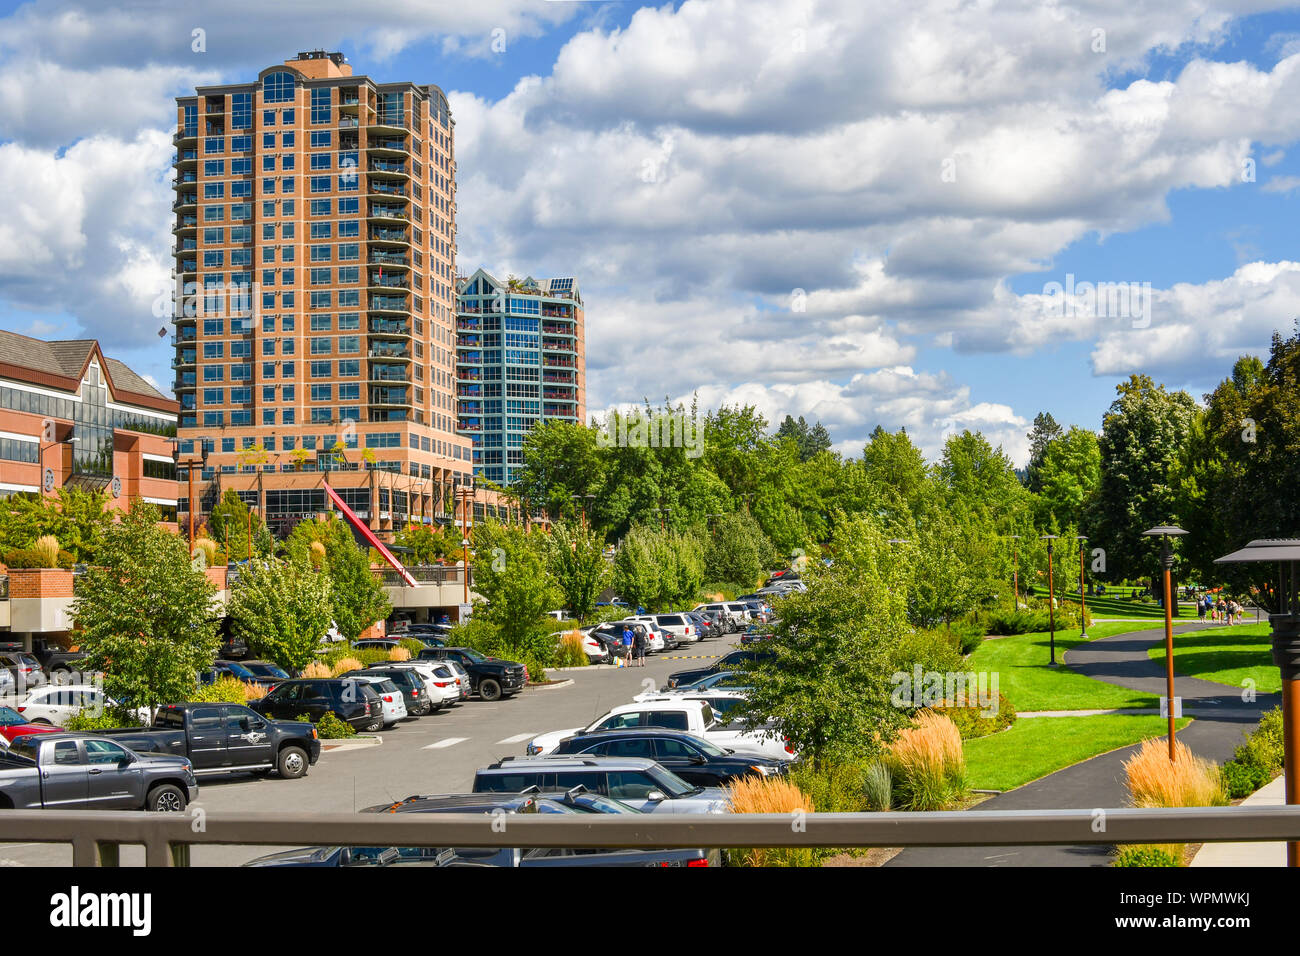 A view of the McEuen Park and parking structure currently a controversial issue due to the increased fees in the mountain town of Coeur d'Alene, Idaho Stock Photo